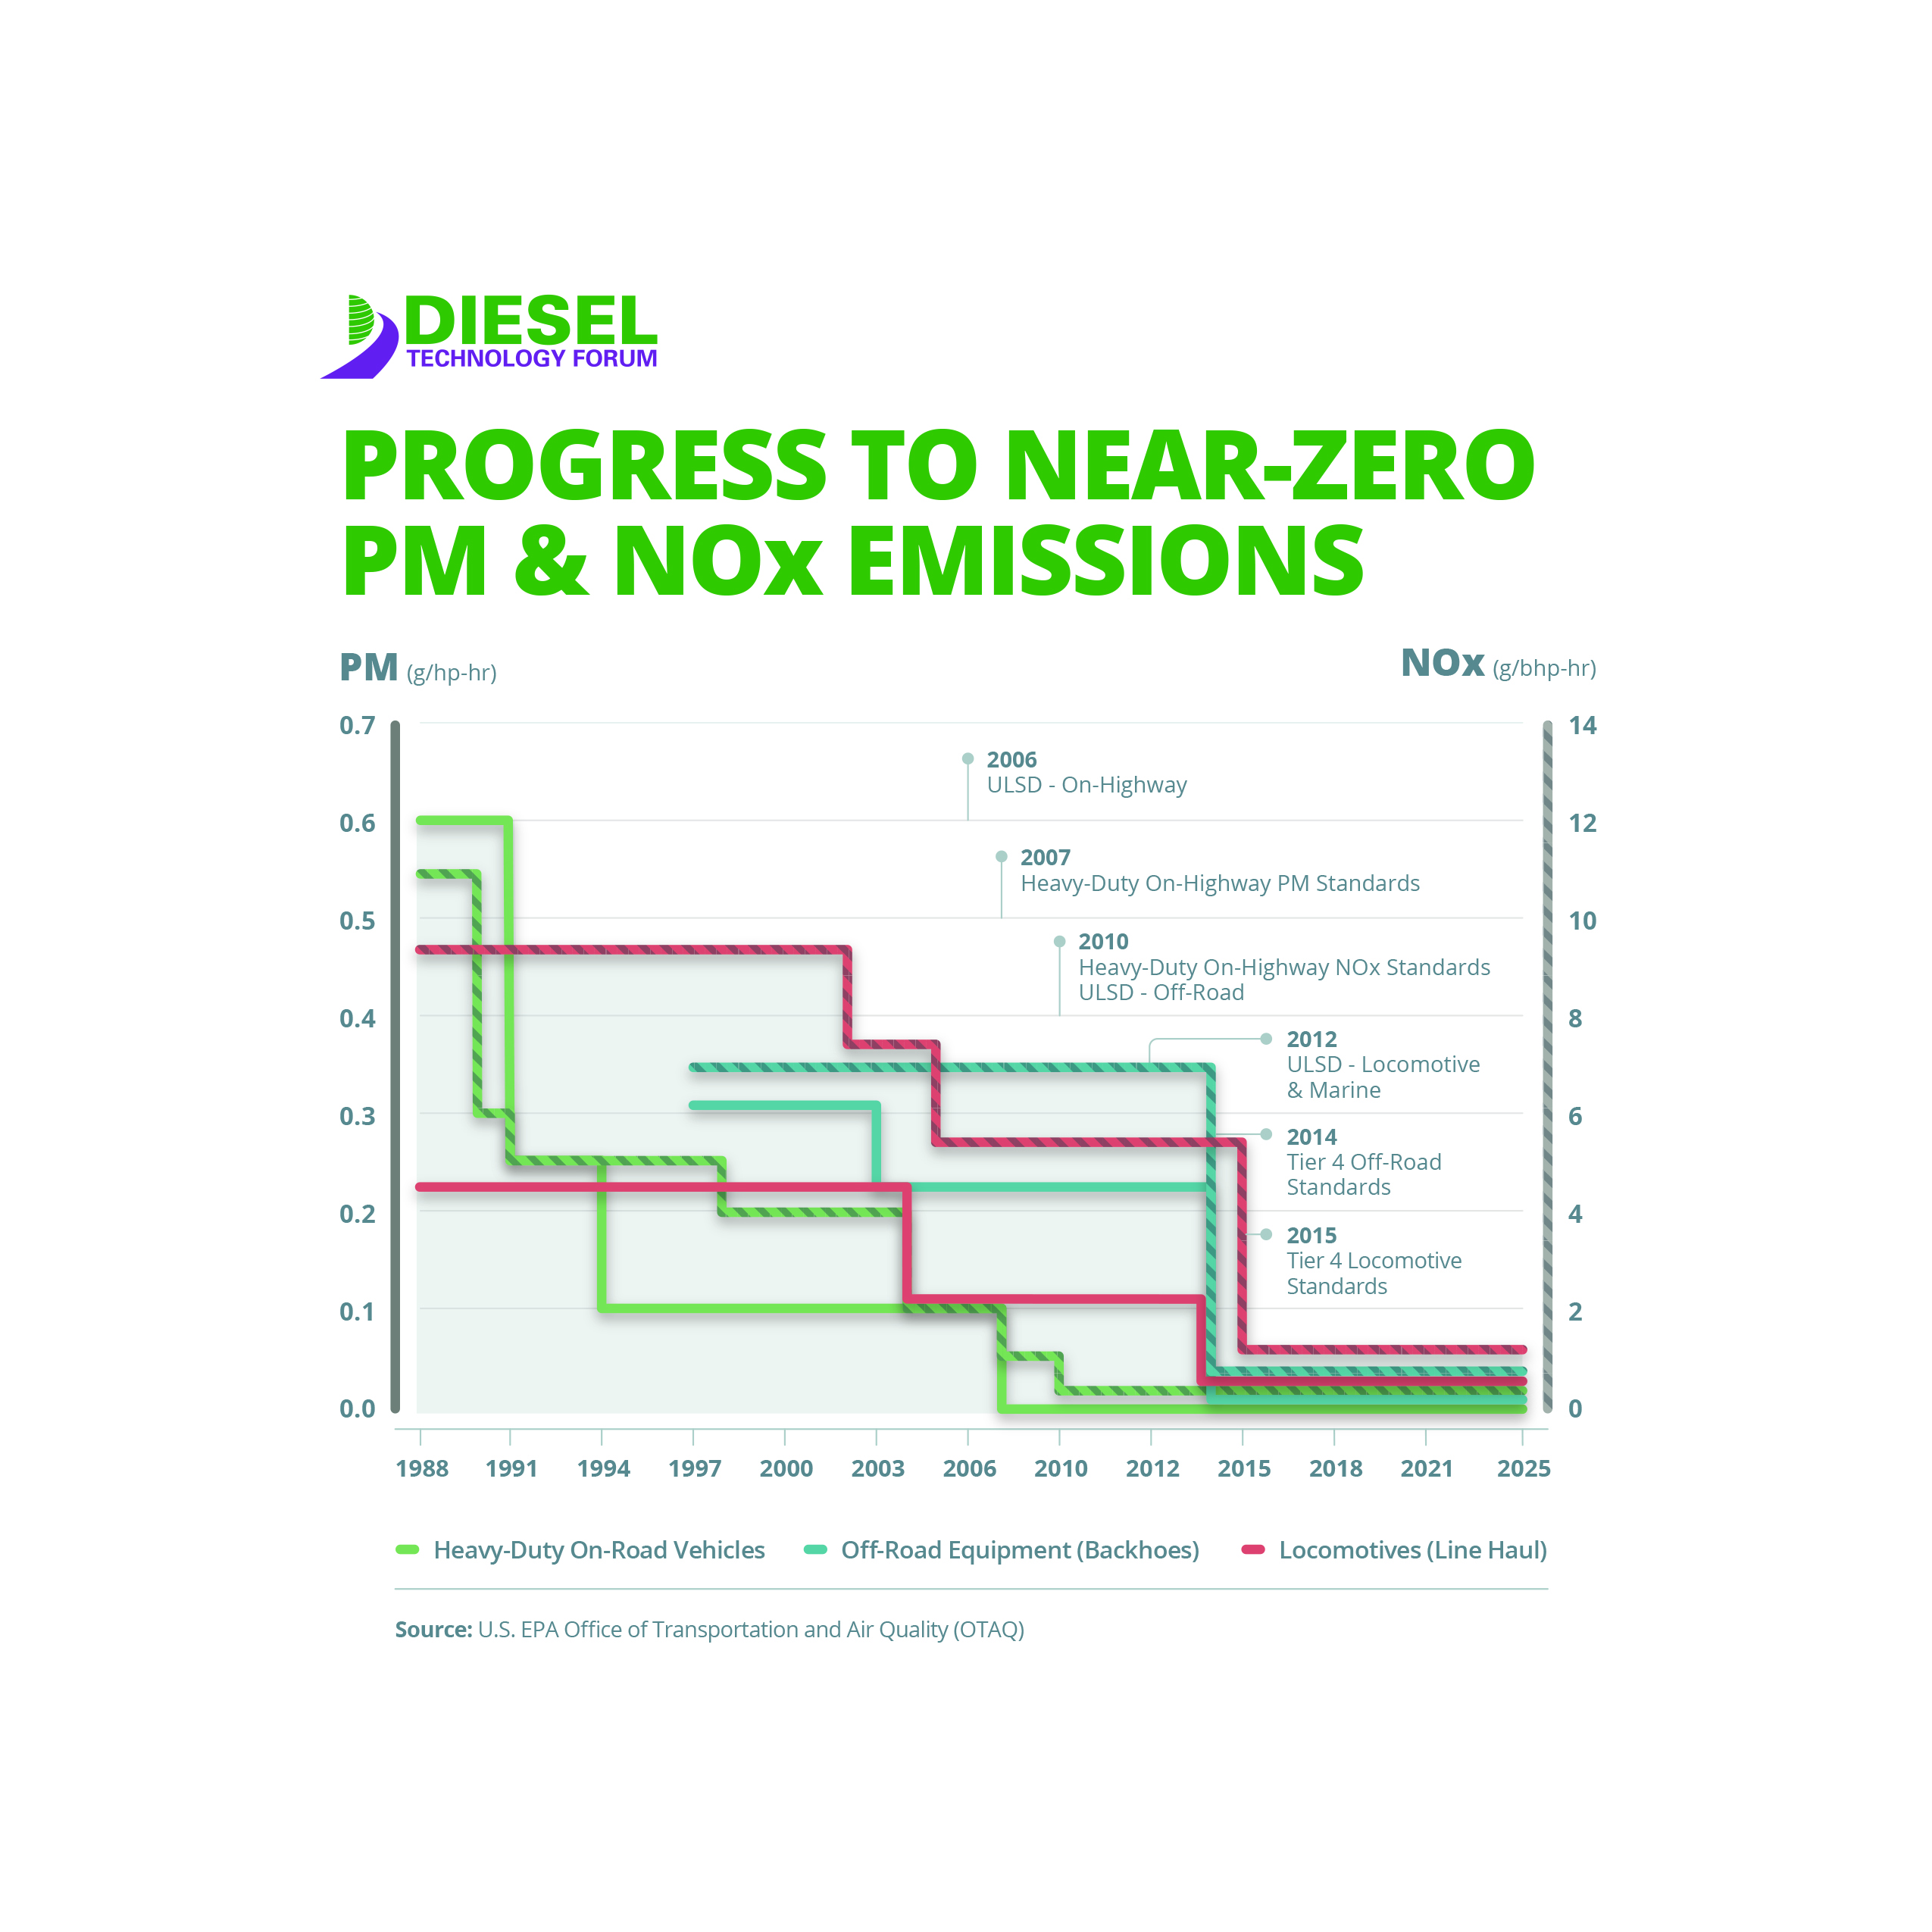 Progress to Near-Zero PM & NOx Emissions